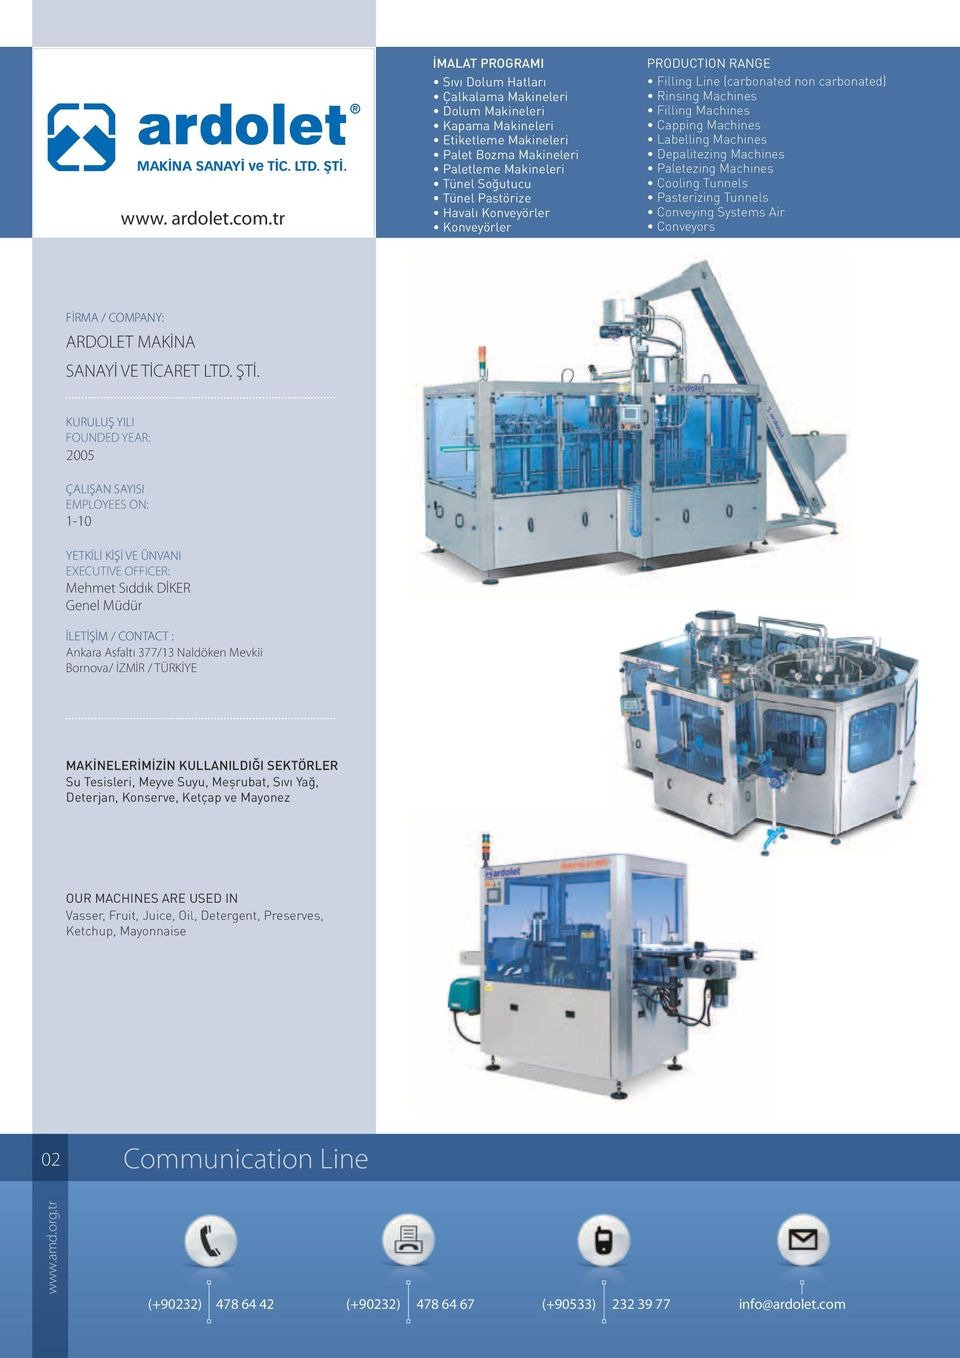 Konveyörler Konveyörler Filling Line (carbonated non carbonated) Rinsing Machines Filling Machines Capping Machines Labelling Machines Depalitezing Machines Paletezing Machines Cooling Tunnels